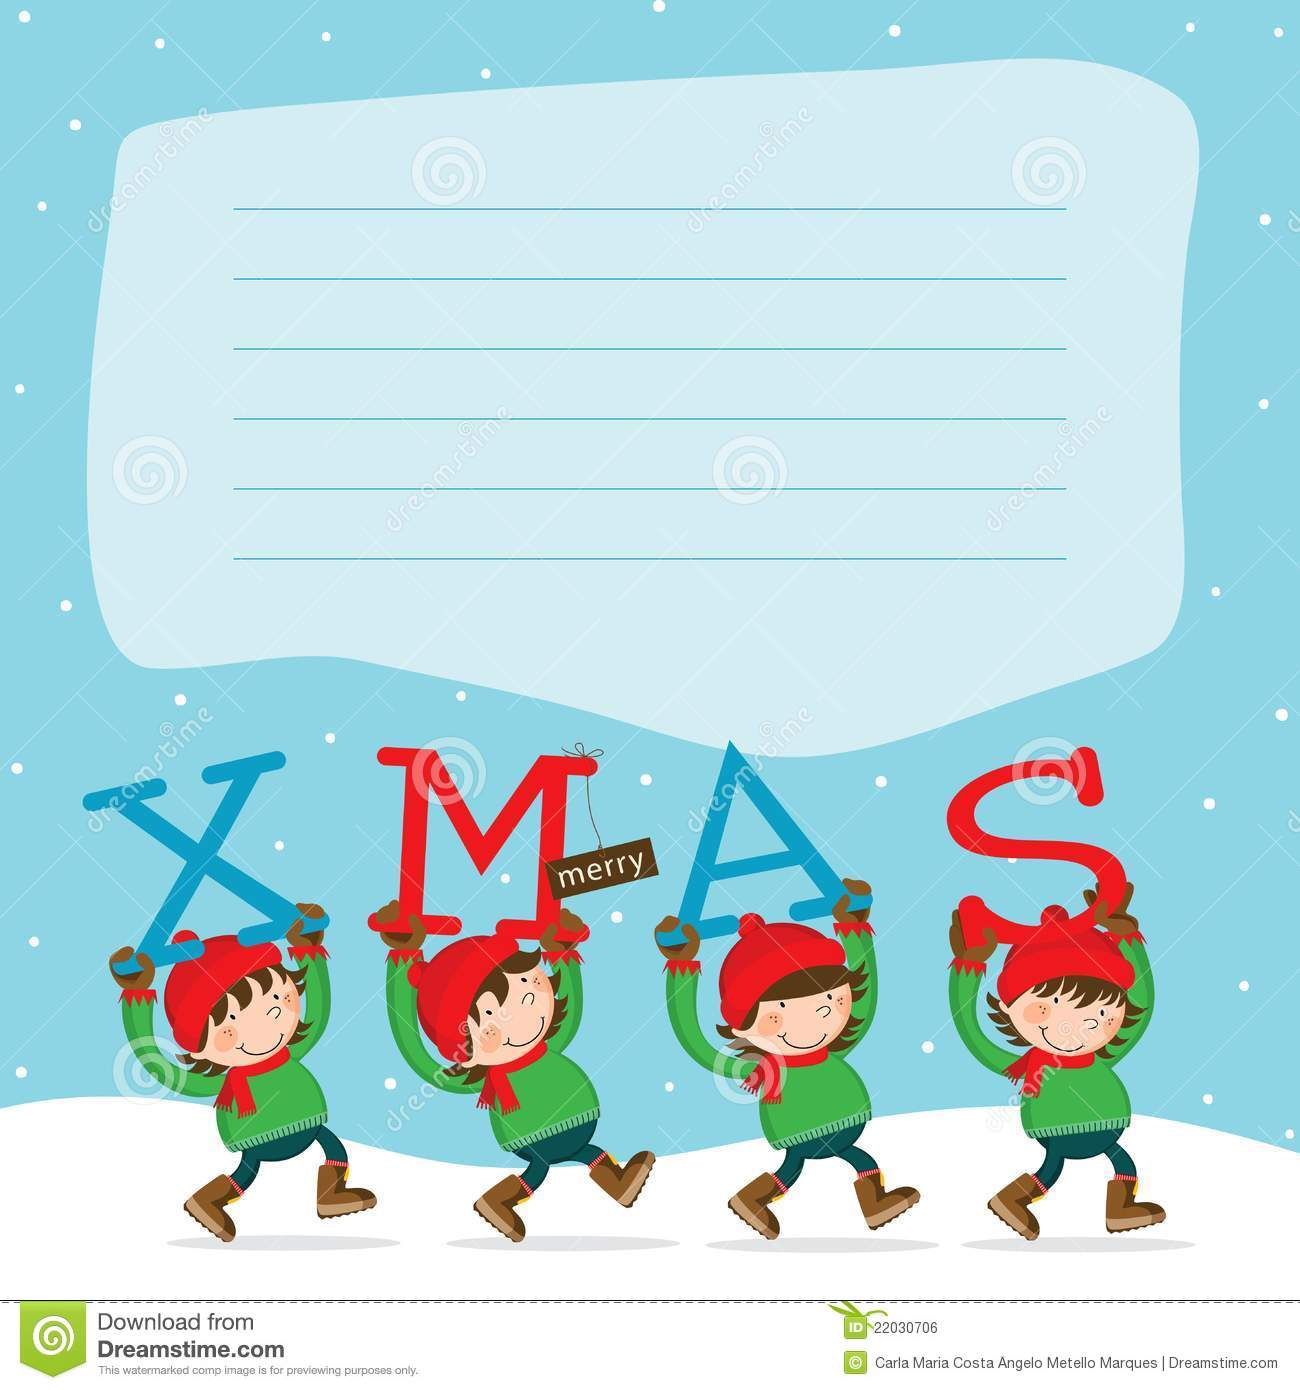 Merry Christmas Elf´s Royalty Free Stock Image - Image: 22030706